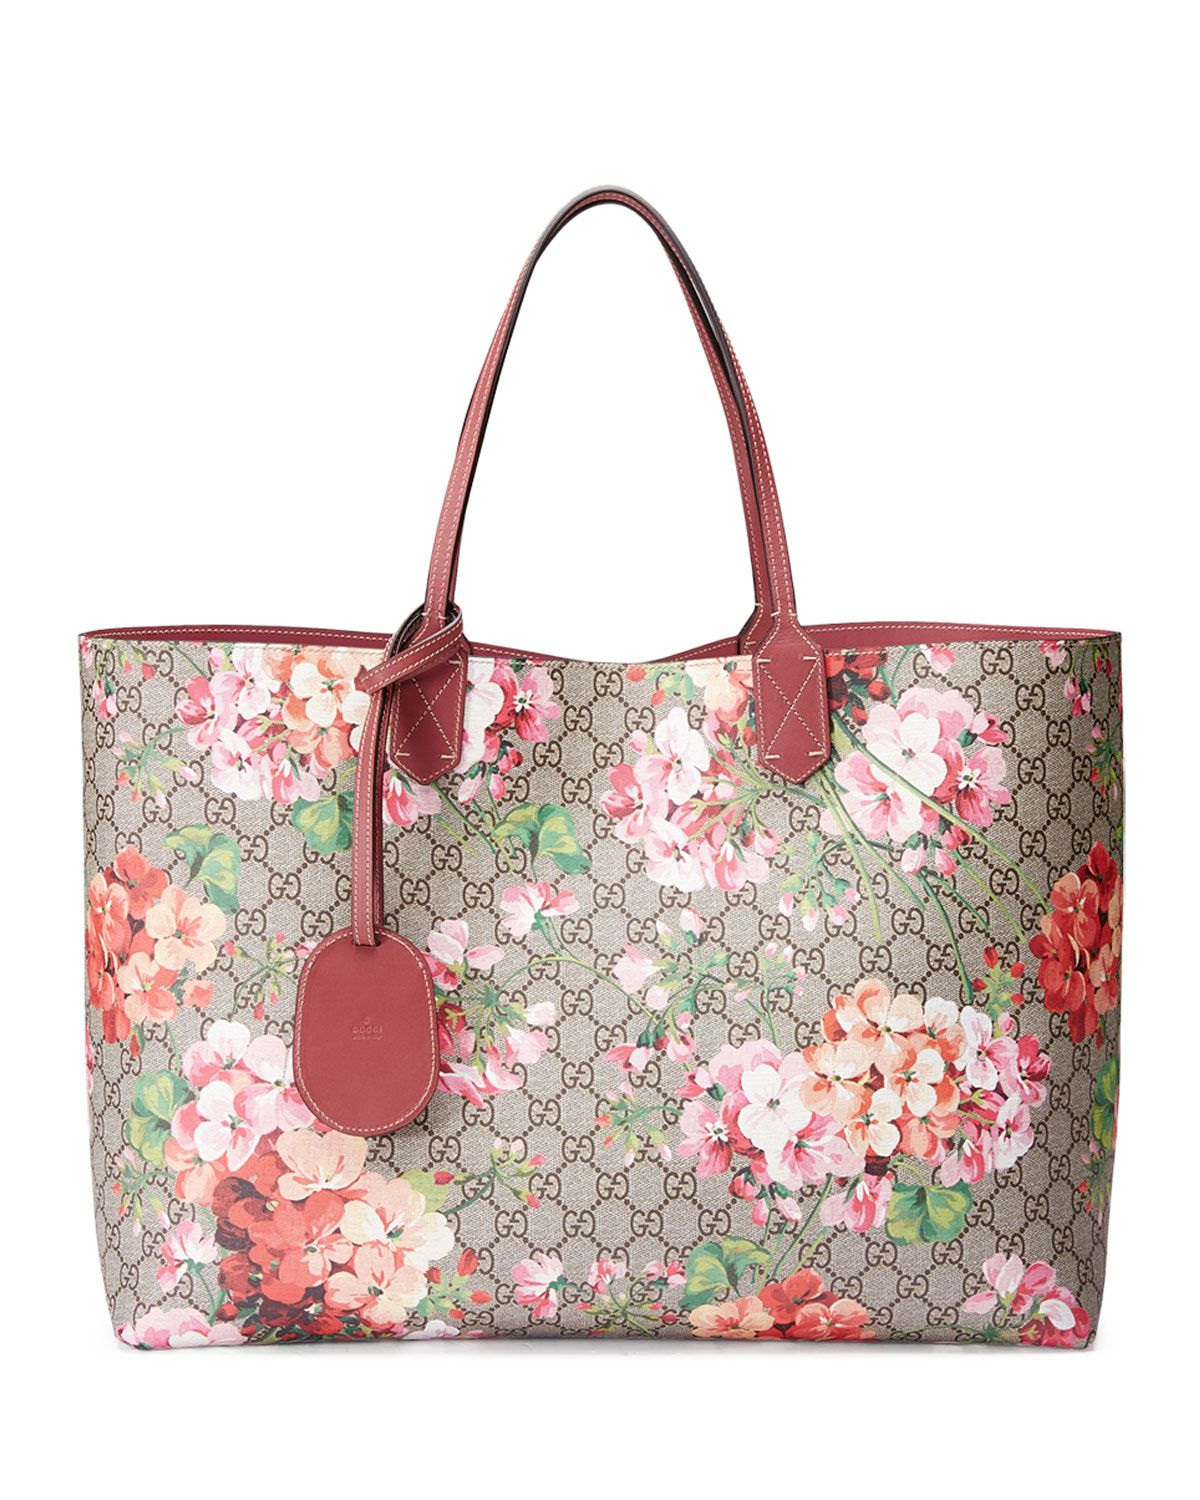 24d075164 Gucci GG Blooms Large Reversible Leather Tote Bag, Multicolor, Multi Rose